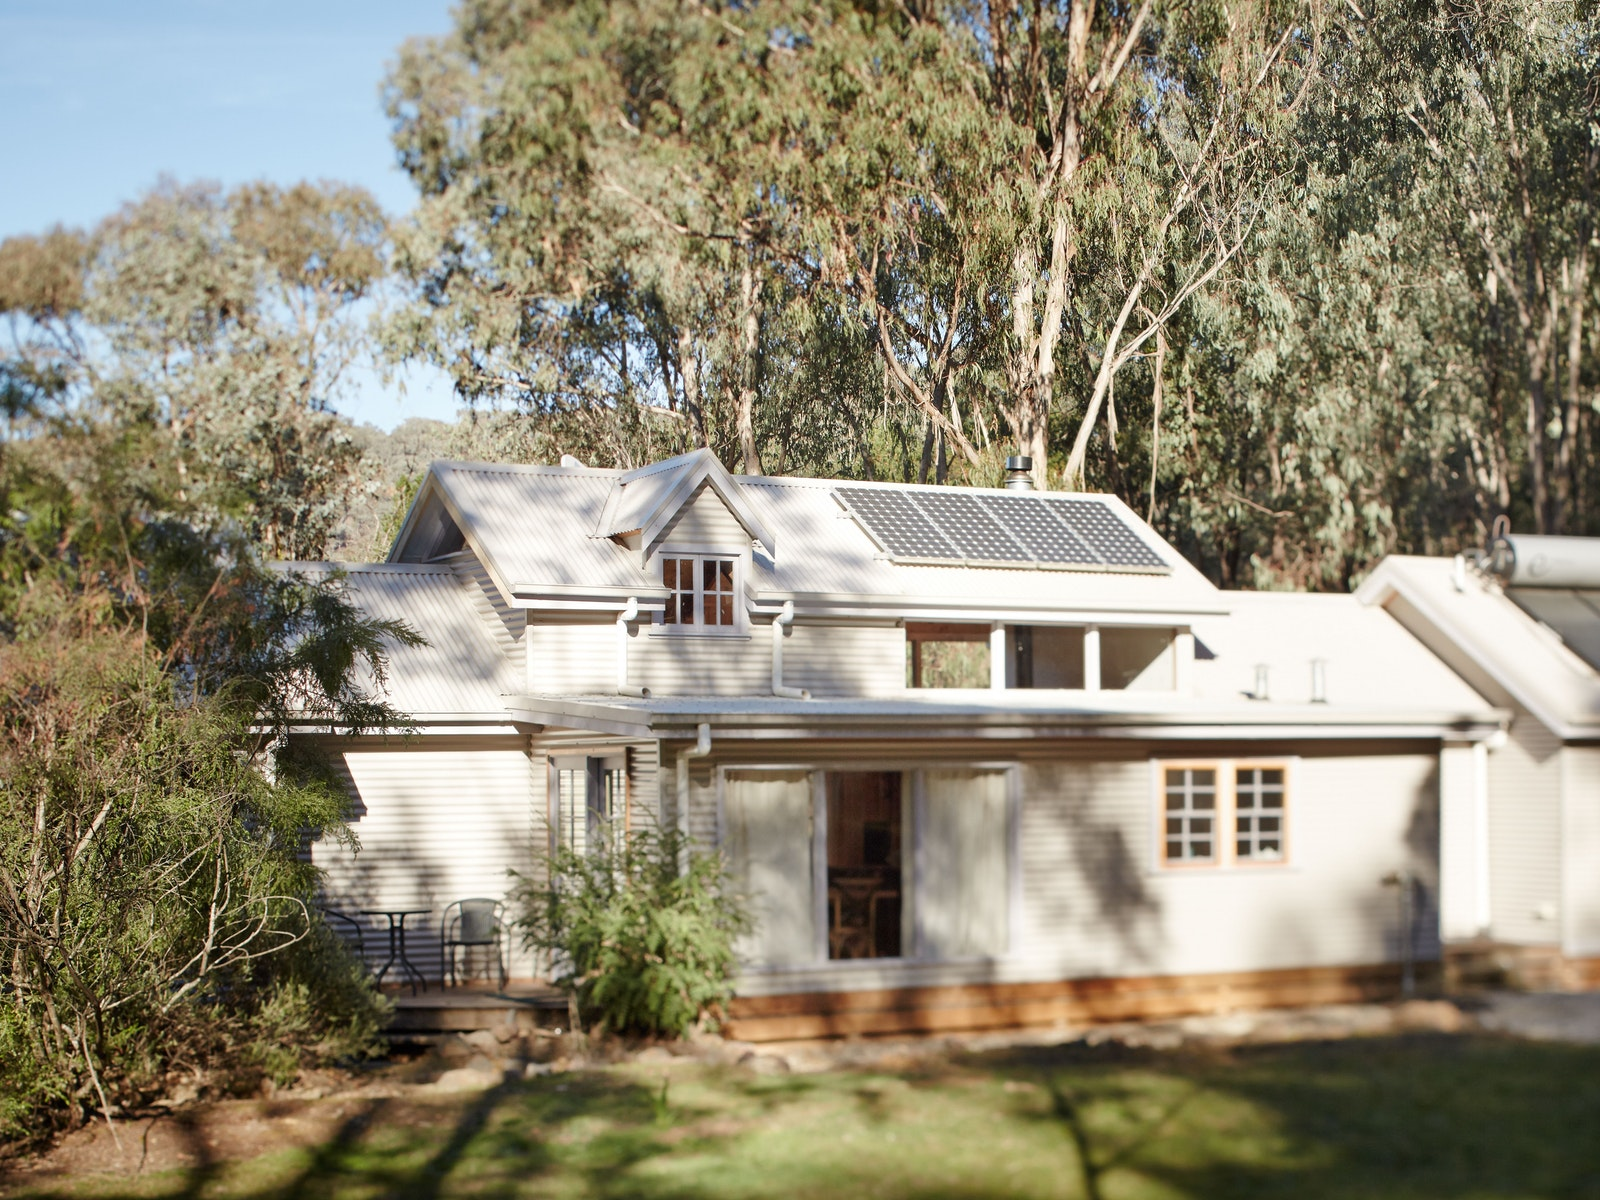 King Valley Lodge